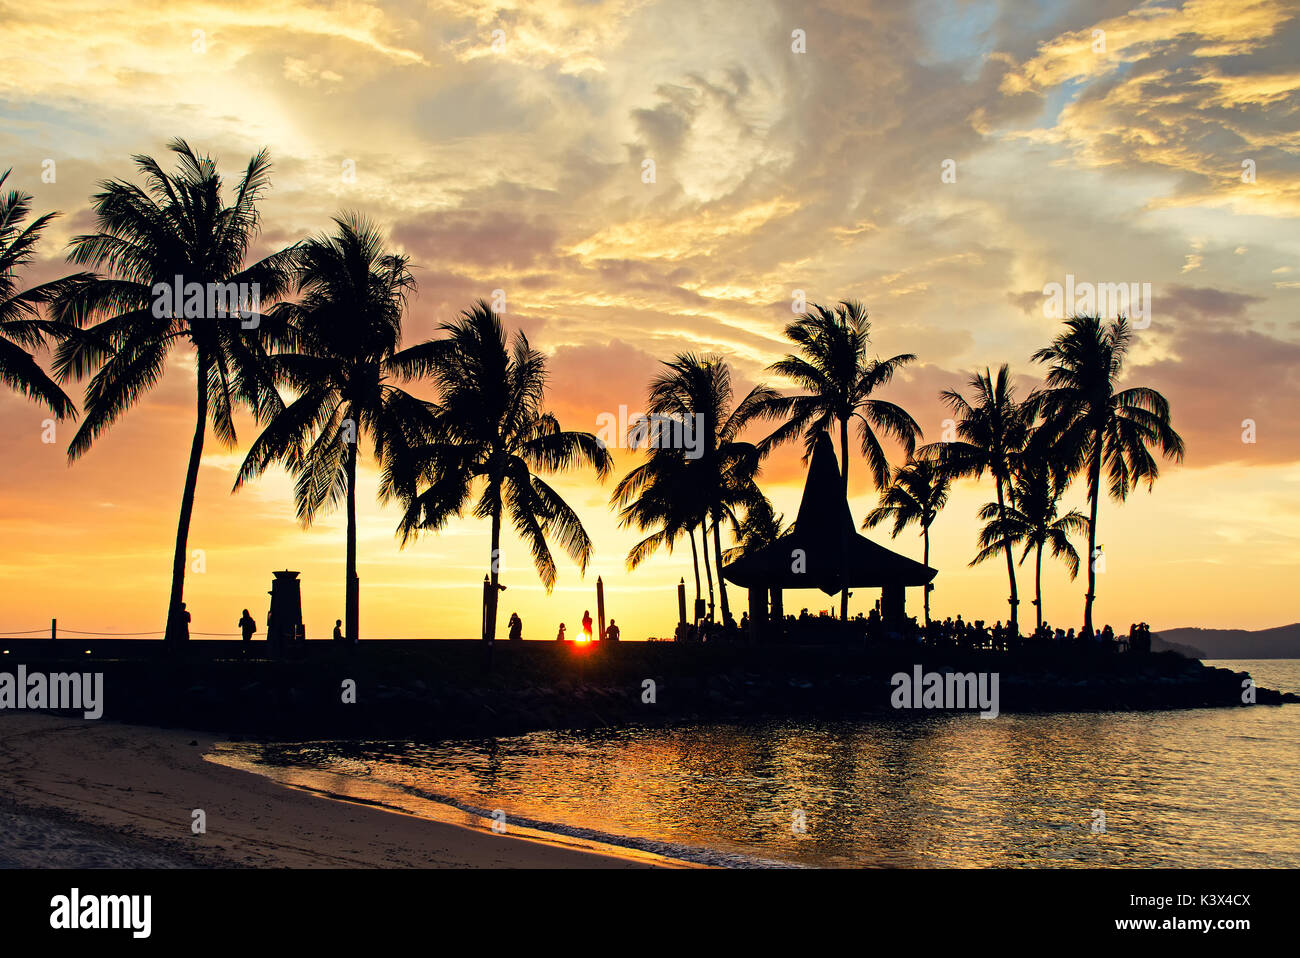 Silhouettes of palm tree during sunset in Kota Kinabalu beach, Sabah Borneo, Malaysia. Stock Photo